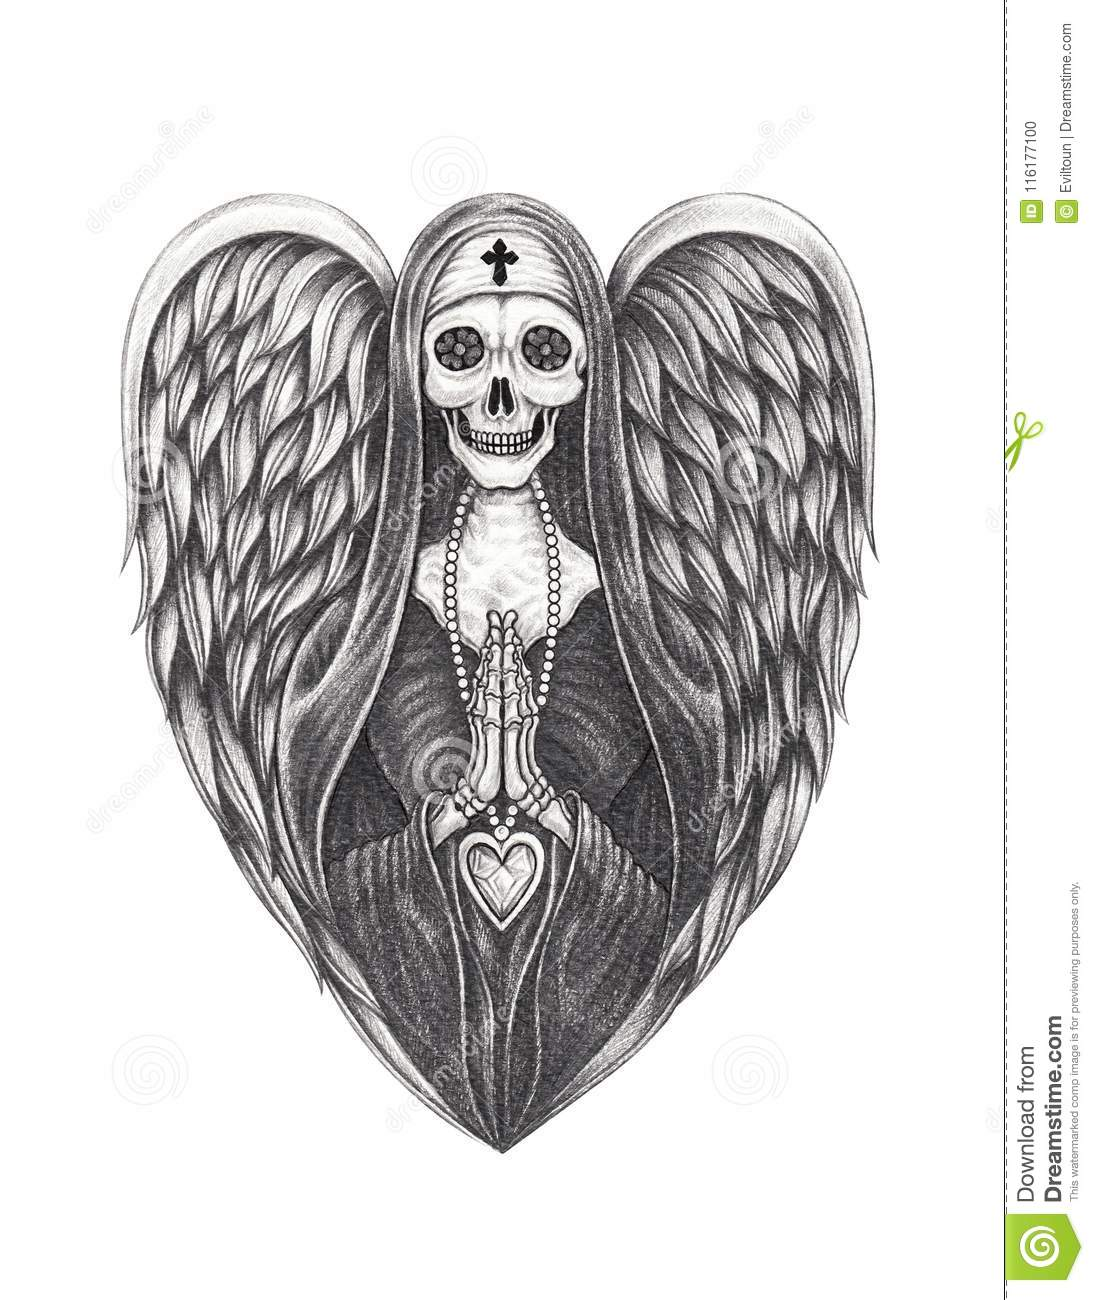 Art design surreal nun angle skull hand pencil drawing on paper